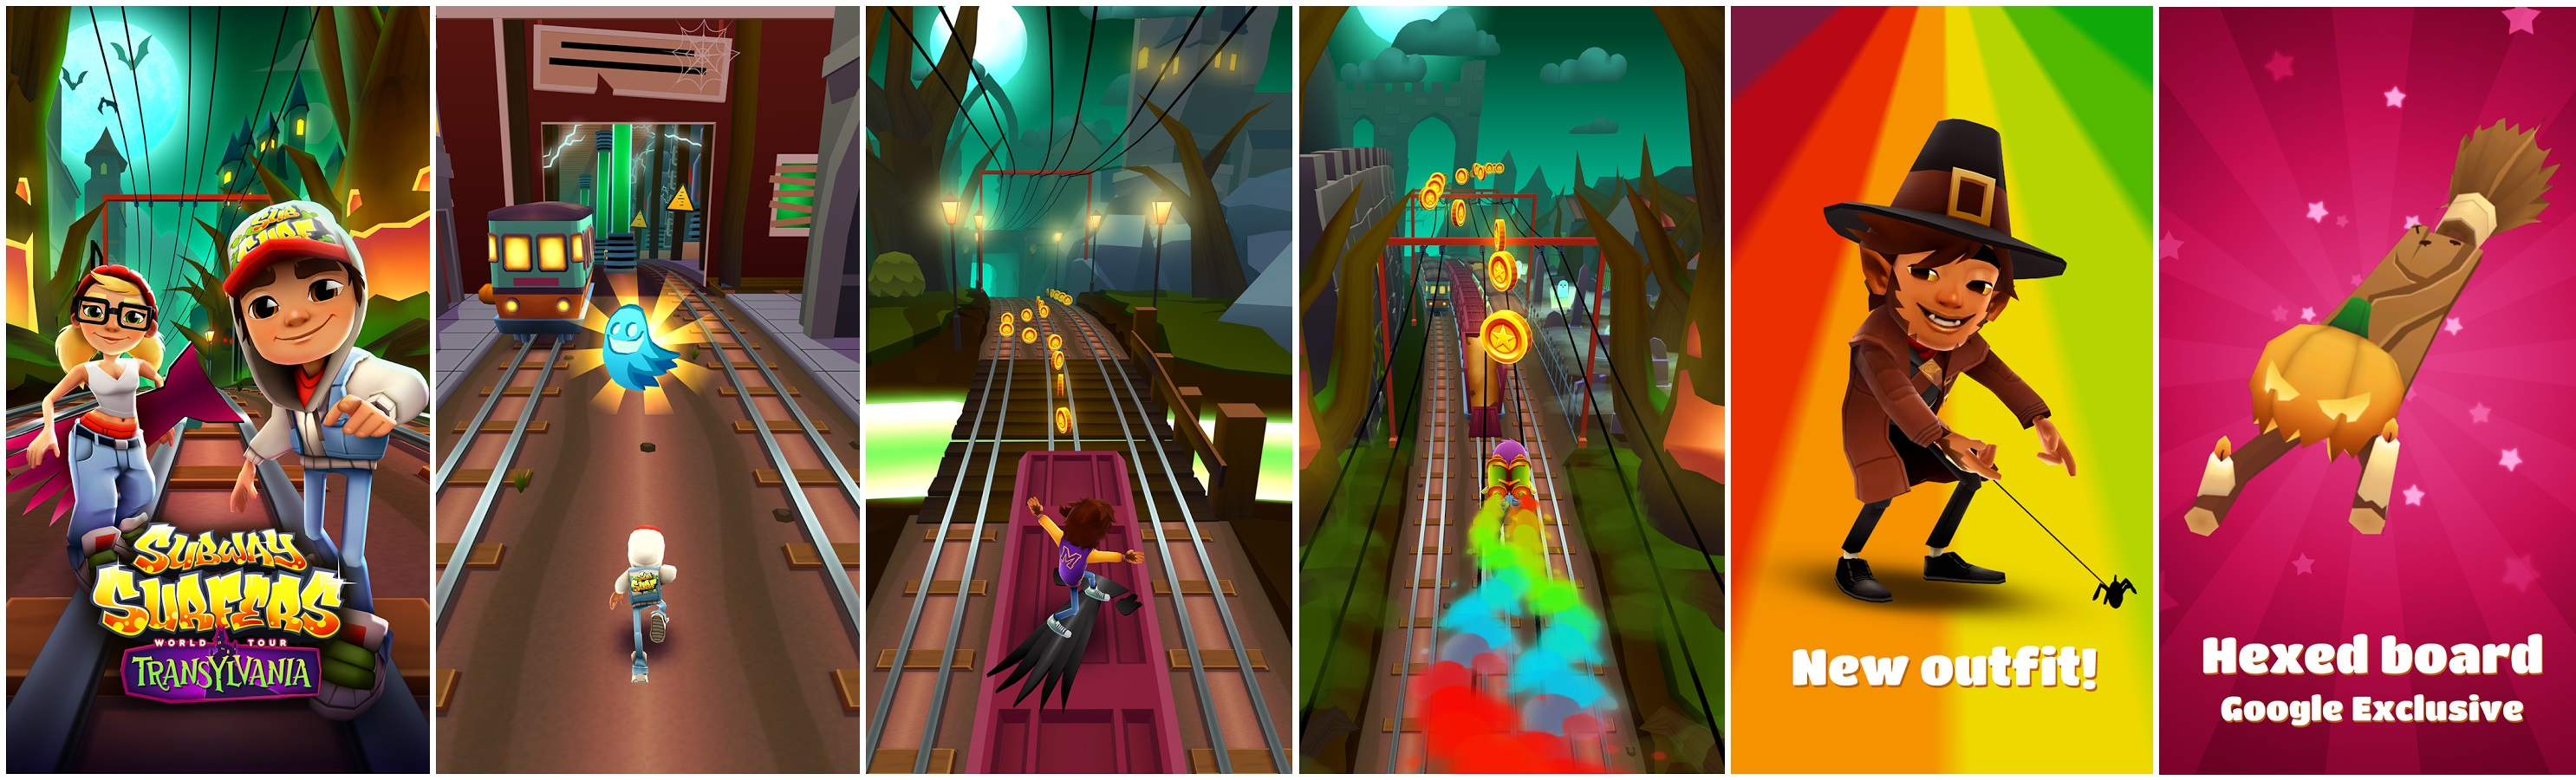 how to modify subway surfers high score without root